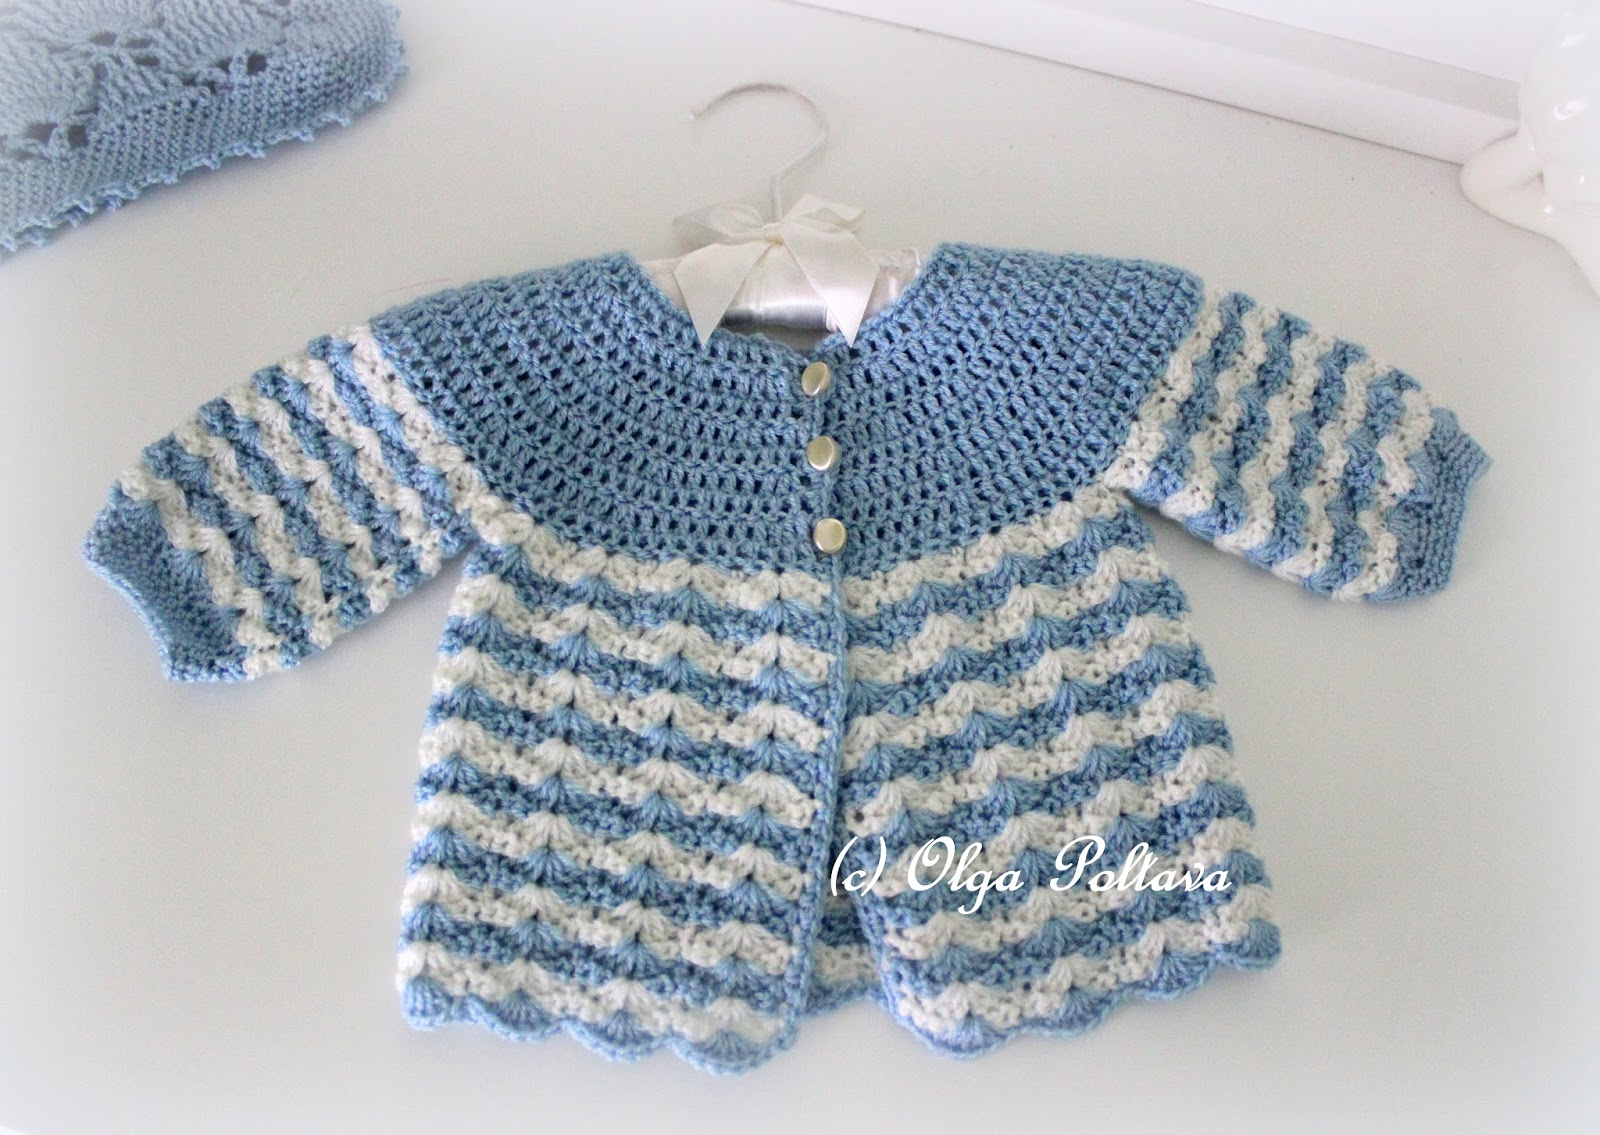 Crochet Patterns With Super Fine Yarn : Lacy Crochet: Newborn Baby Crochet Sweater